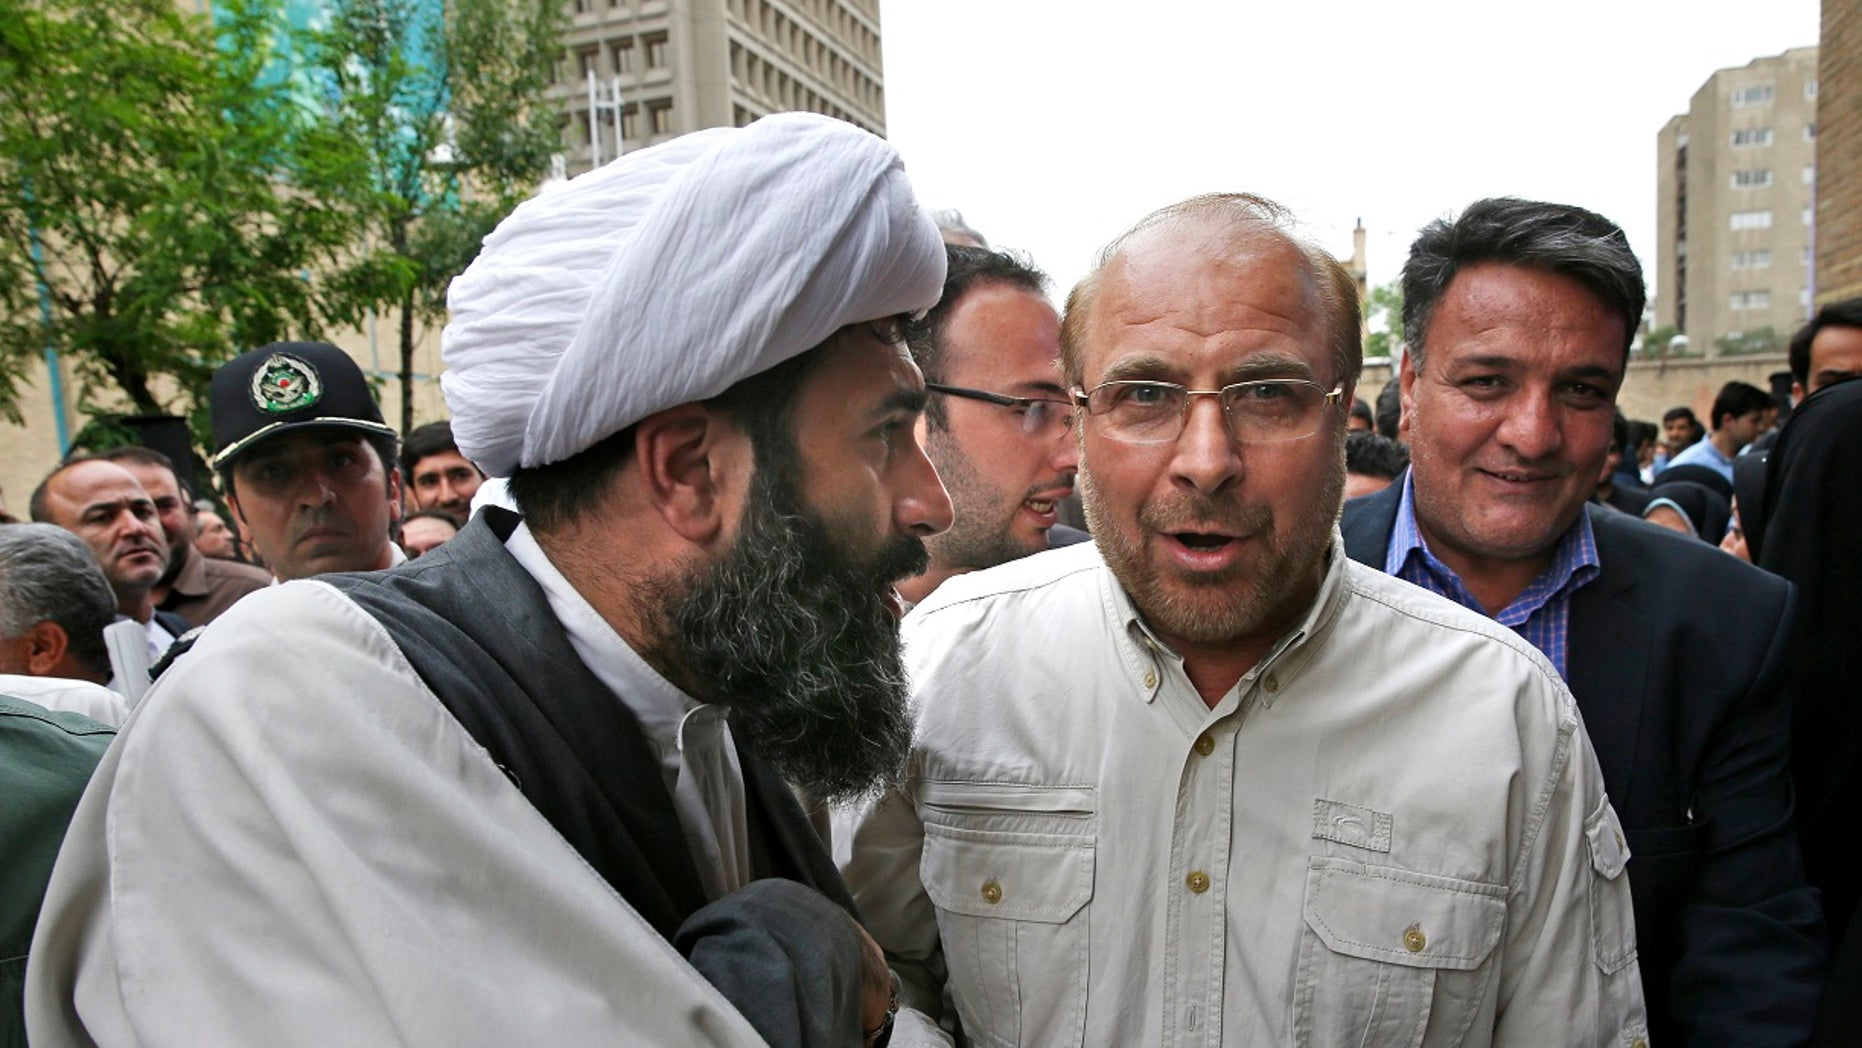 Tehran mayor Mohammad Bagher Qalibaf threw his support behind conservative Ebrahim Raisi for Iran's presidential election. The election is set to take place this Friday, May 19, 2017. Raisi is challenging Iranian President Hassan Rouhani.